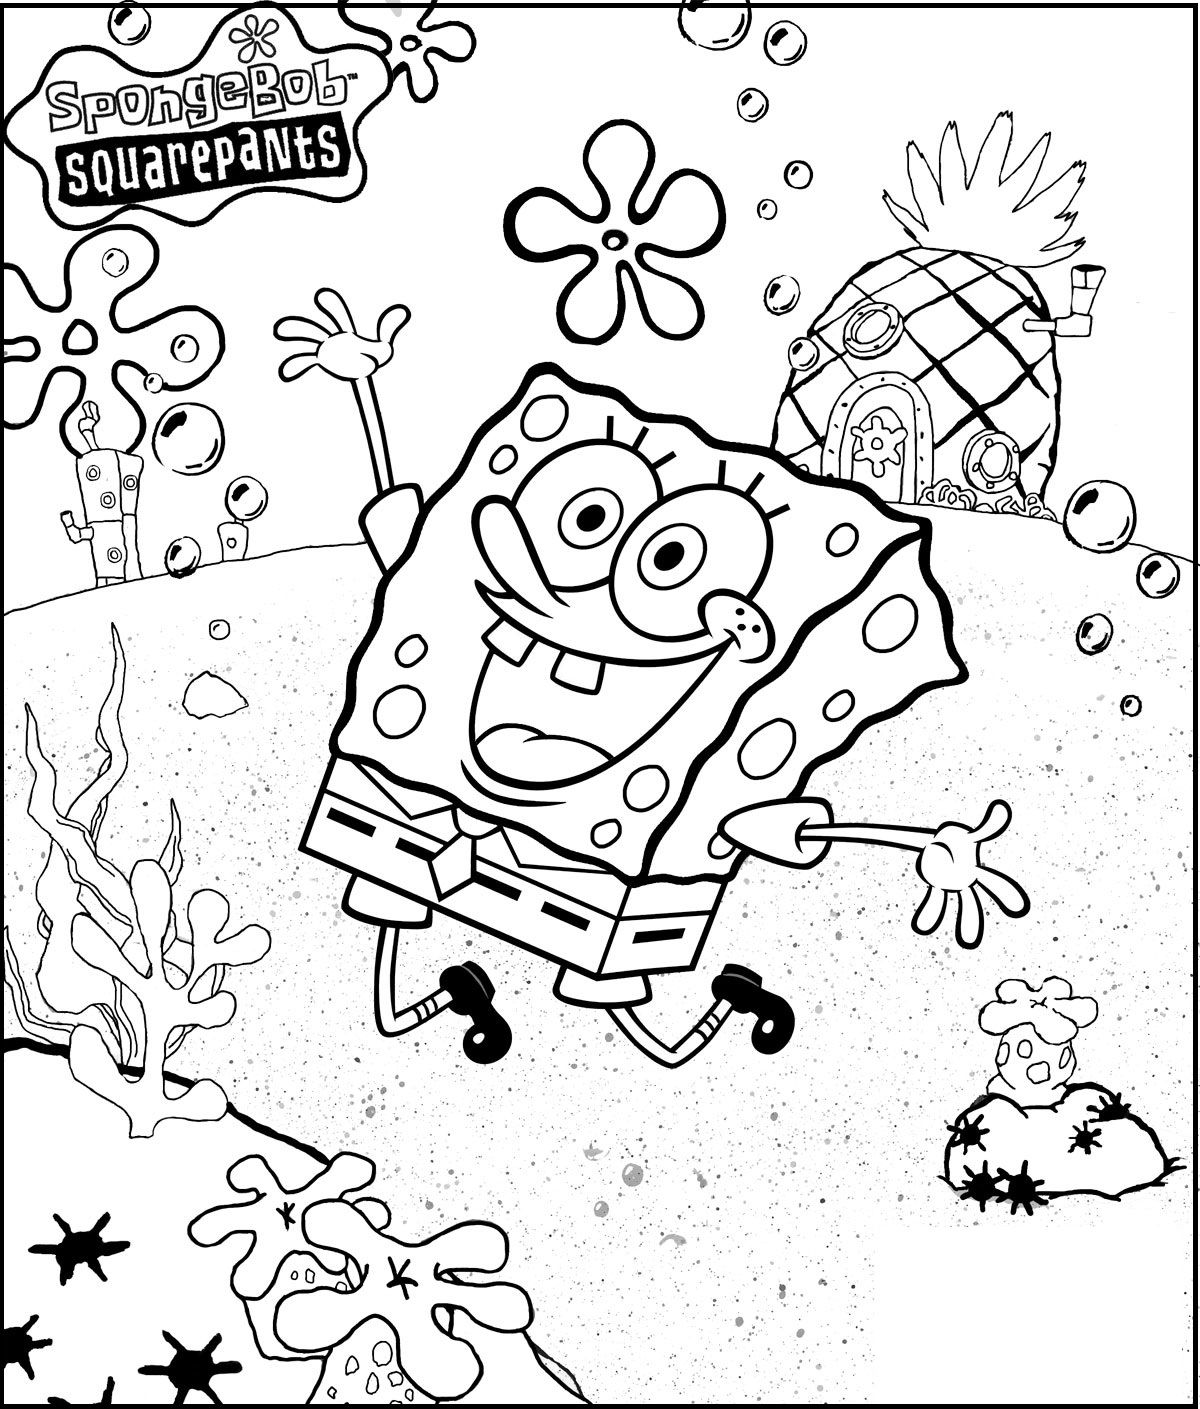 Spongebob Very Merry Coloring Picture For Kids Coloring Parties